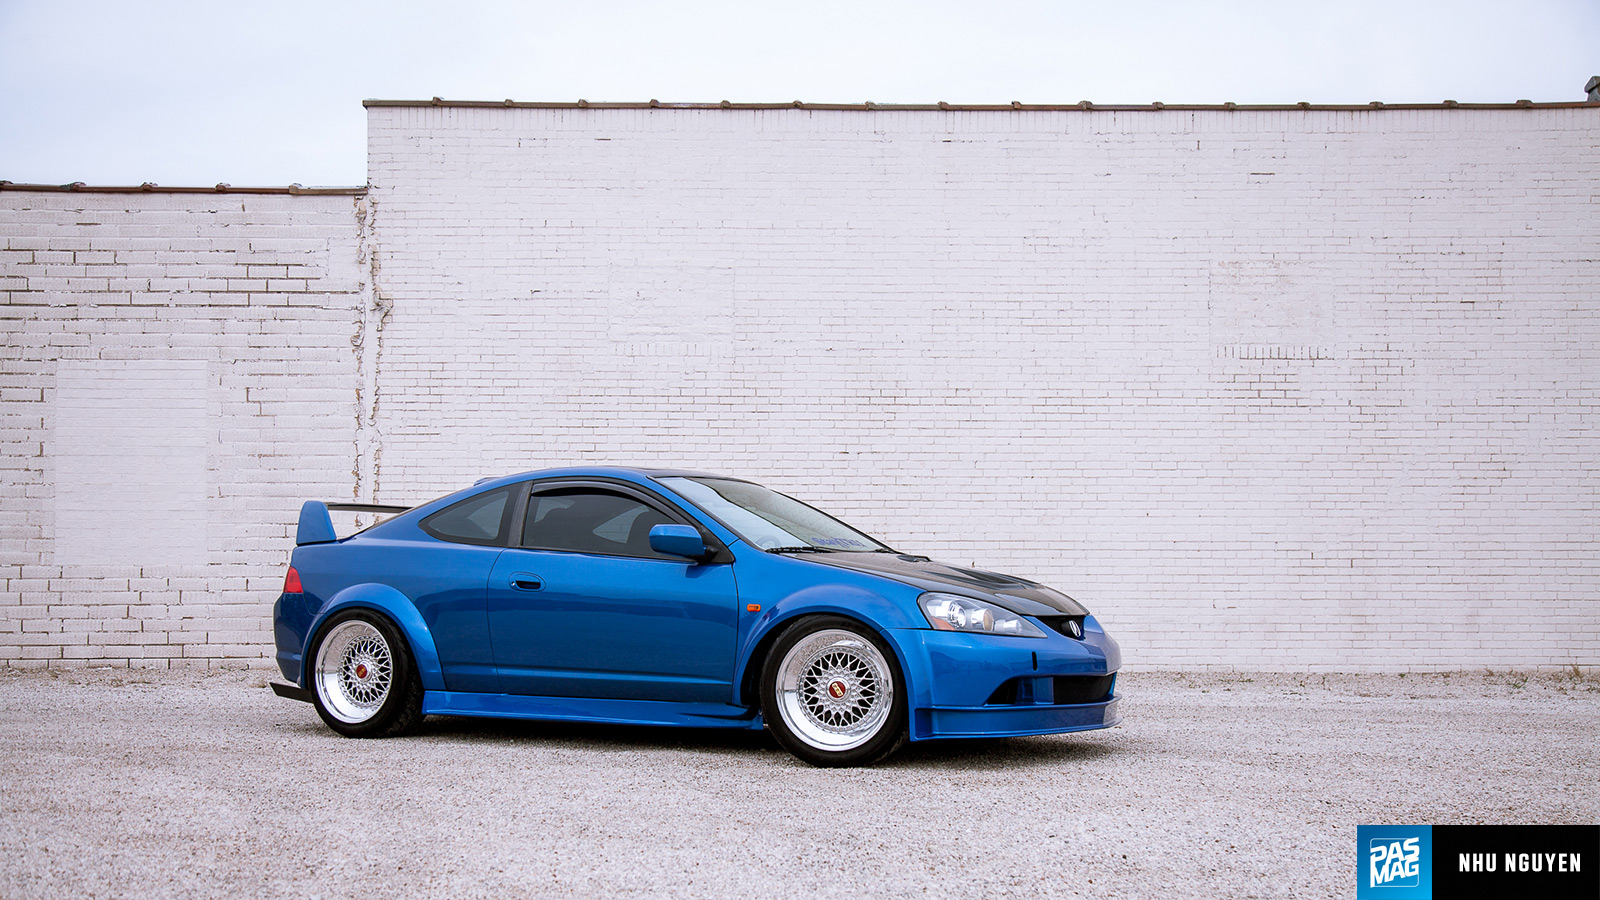 PASMAG PERFORMANCE AUTO AND SOUND Like Father Like Son Luis - Acura rsx type s 2003